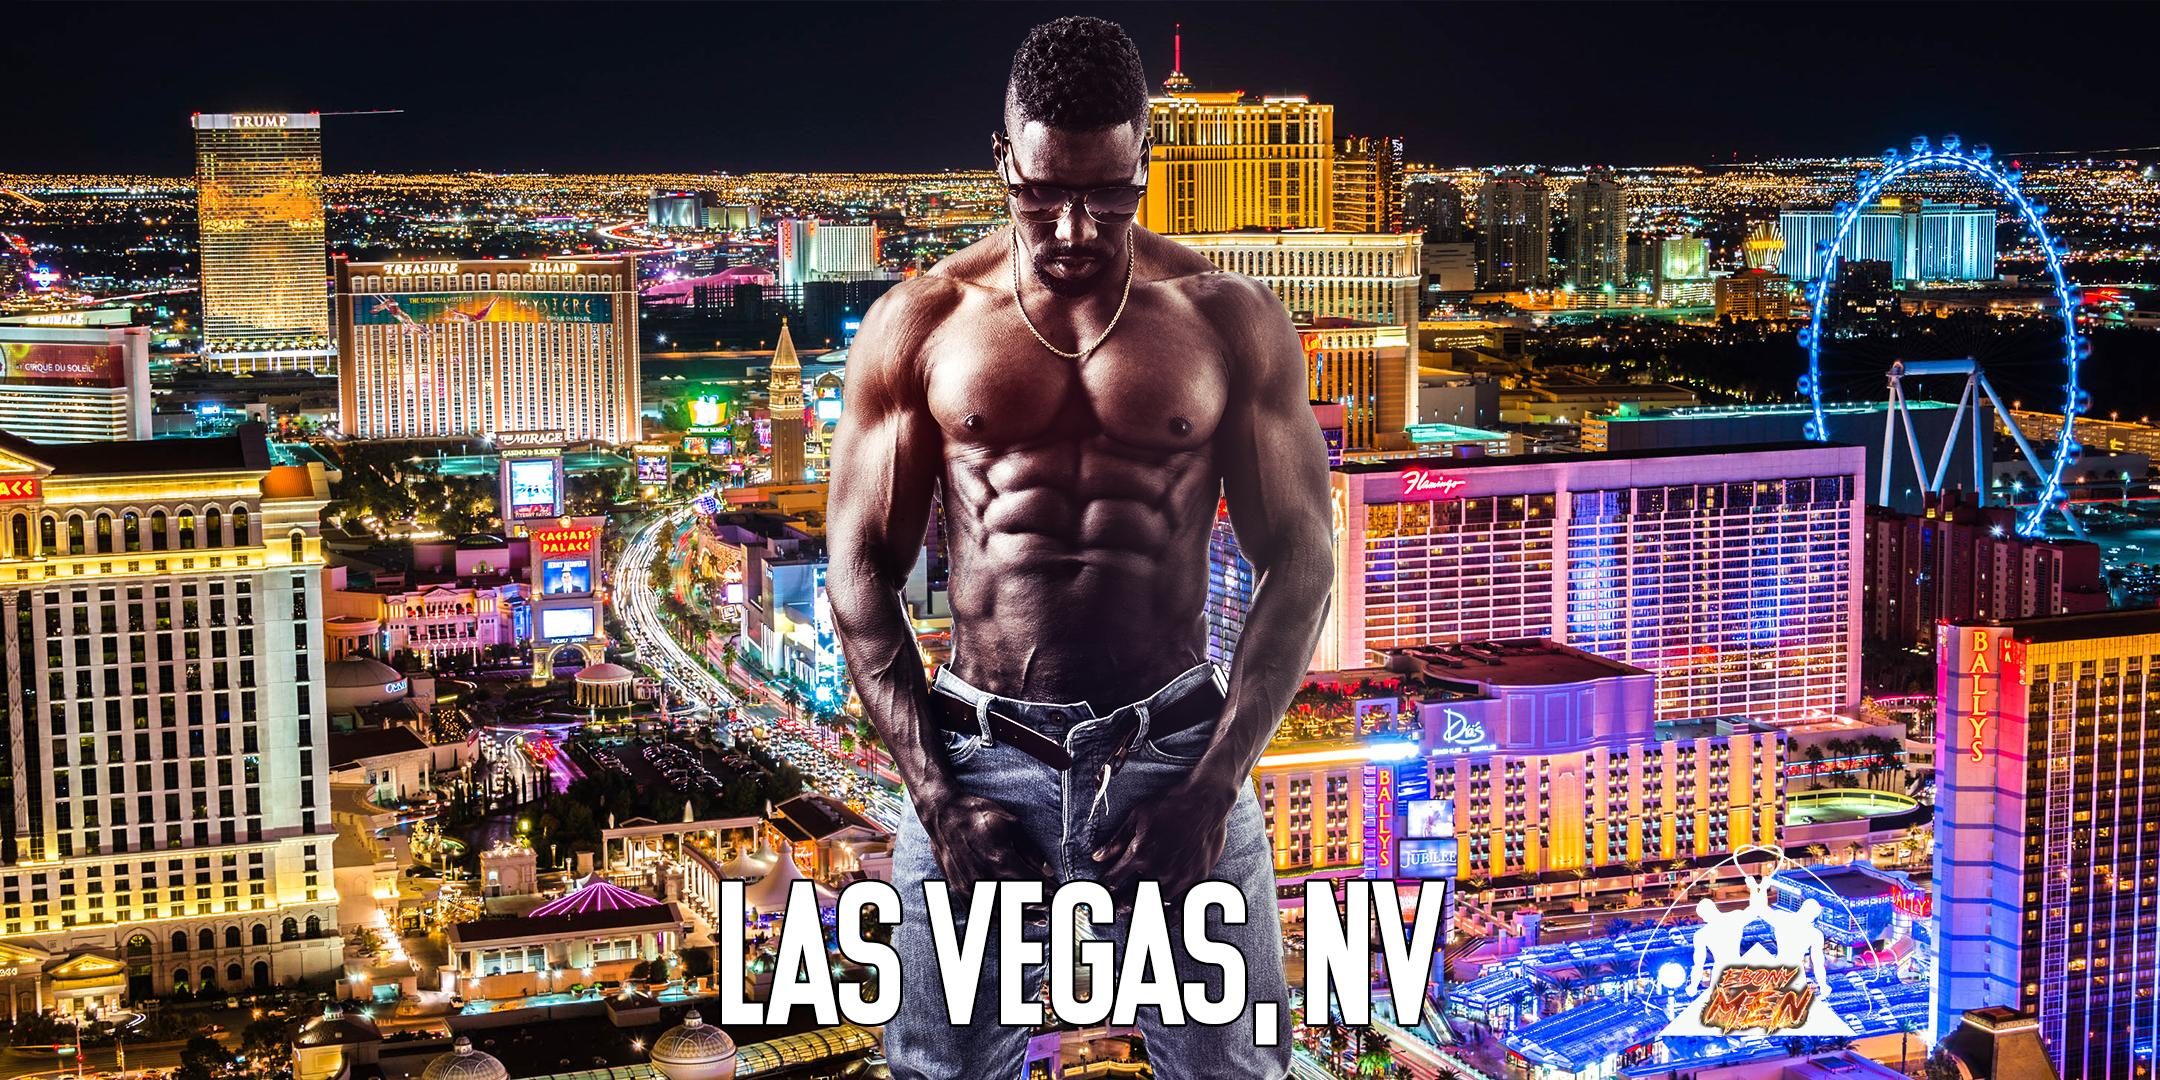 Ebony Men Black Male Revue Strip Clubs & Black Male Strippers Las Vegas, NV 9-11 PM